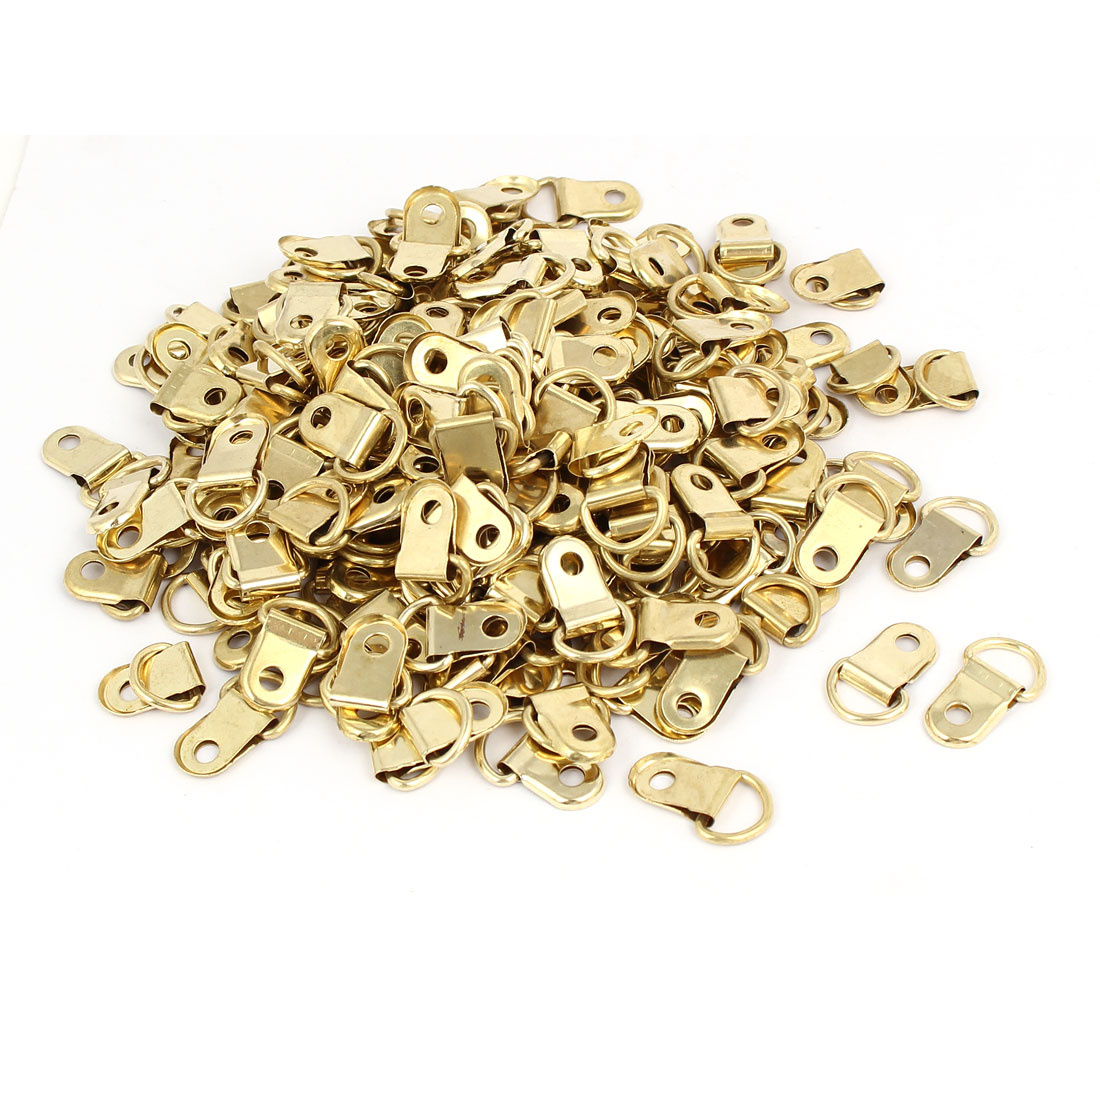 25mmx14mm Iron Single Hole D-Ring Picture Photo Frame Hanger Gold Tone 300pcs